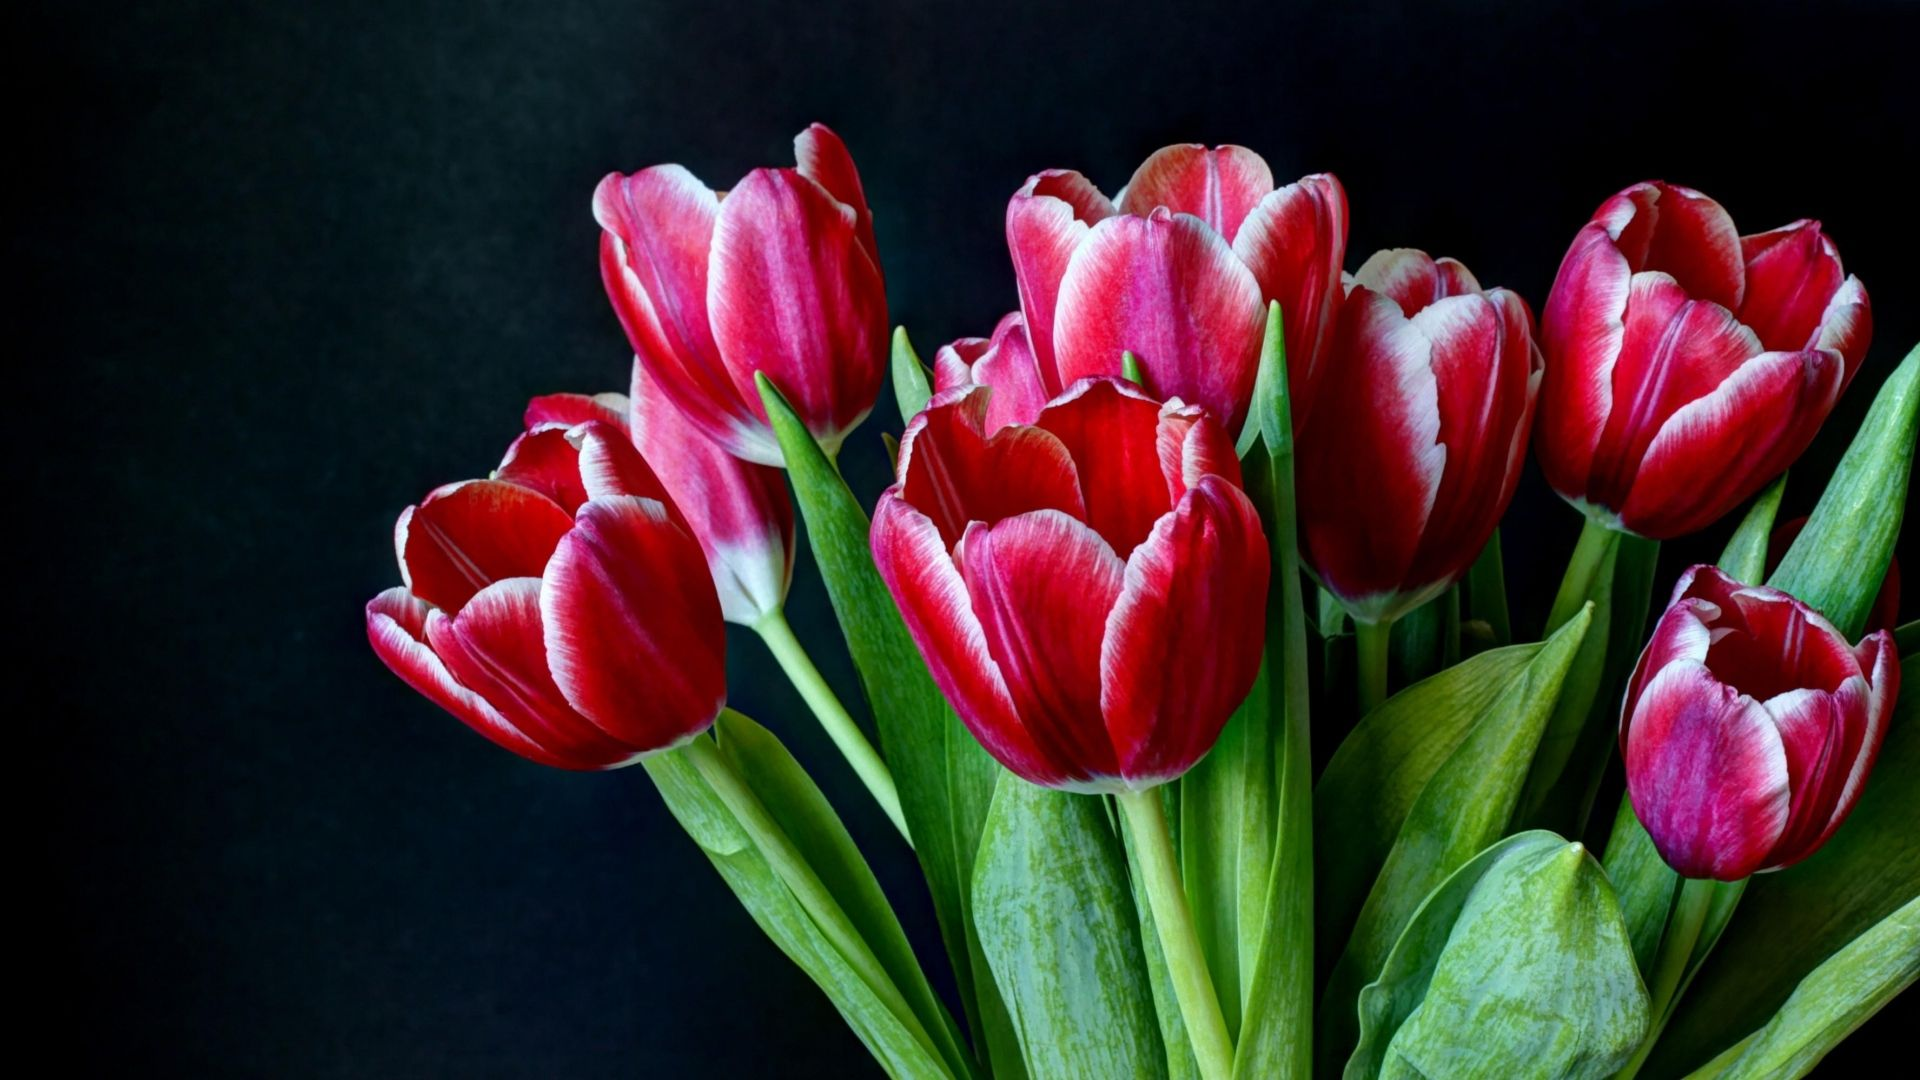 Download Wallpaper 1920x1080 Tulips Flowers Two Color Bouquet Dark Background Full Hd 1080p Hd Background Tulips Spring Flowers Wallpaper Flowers